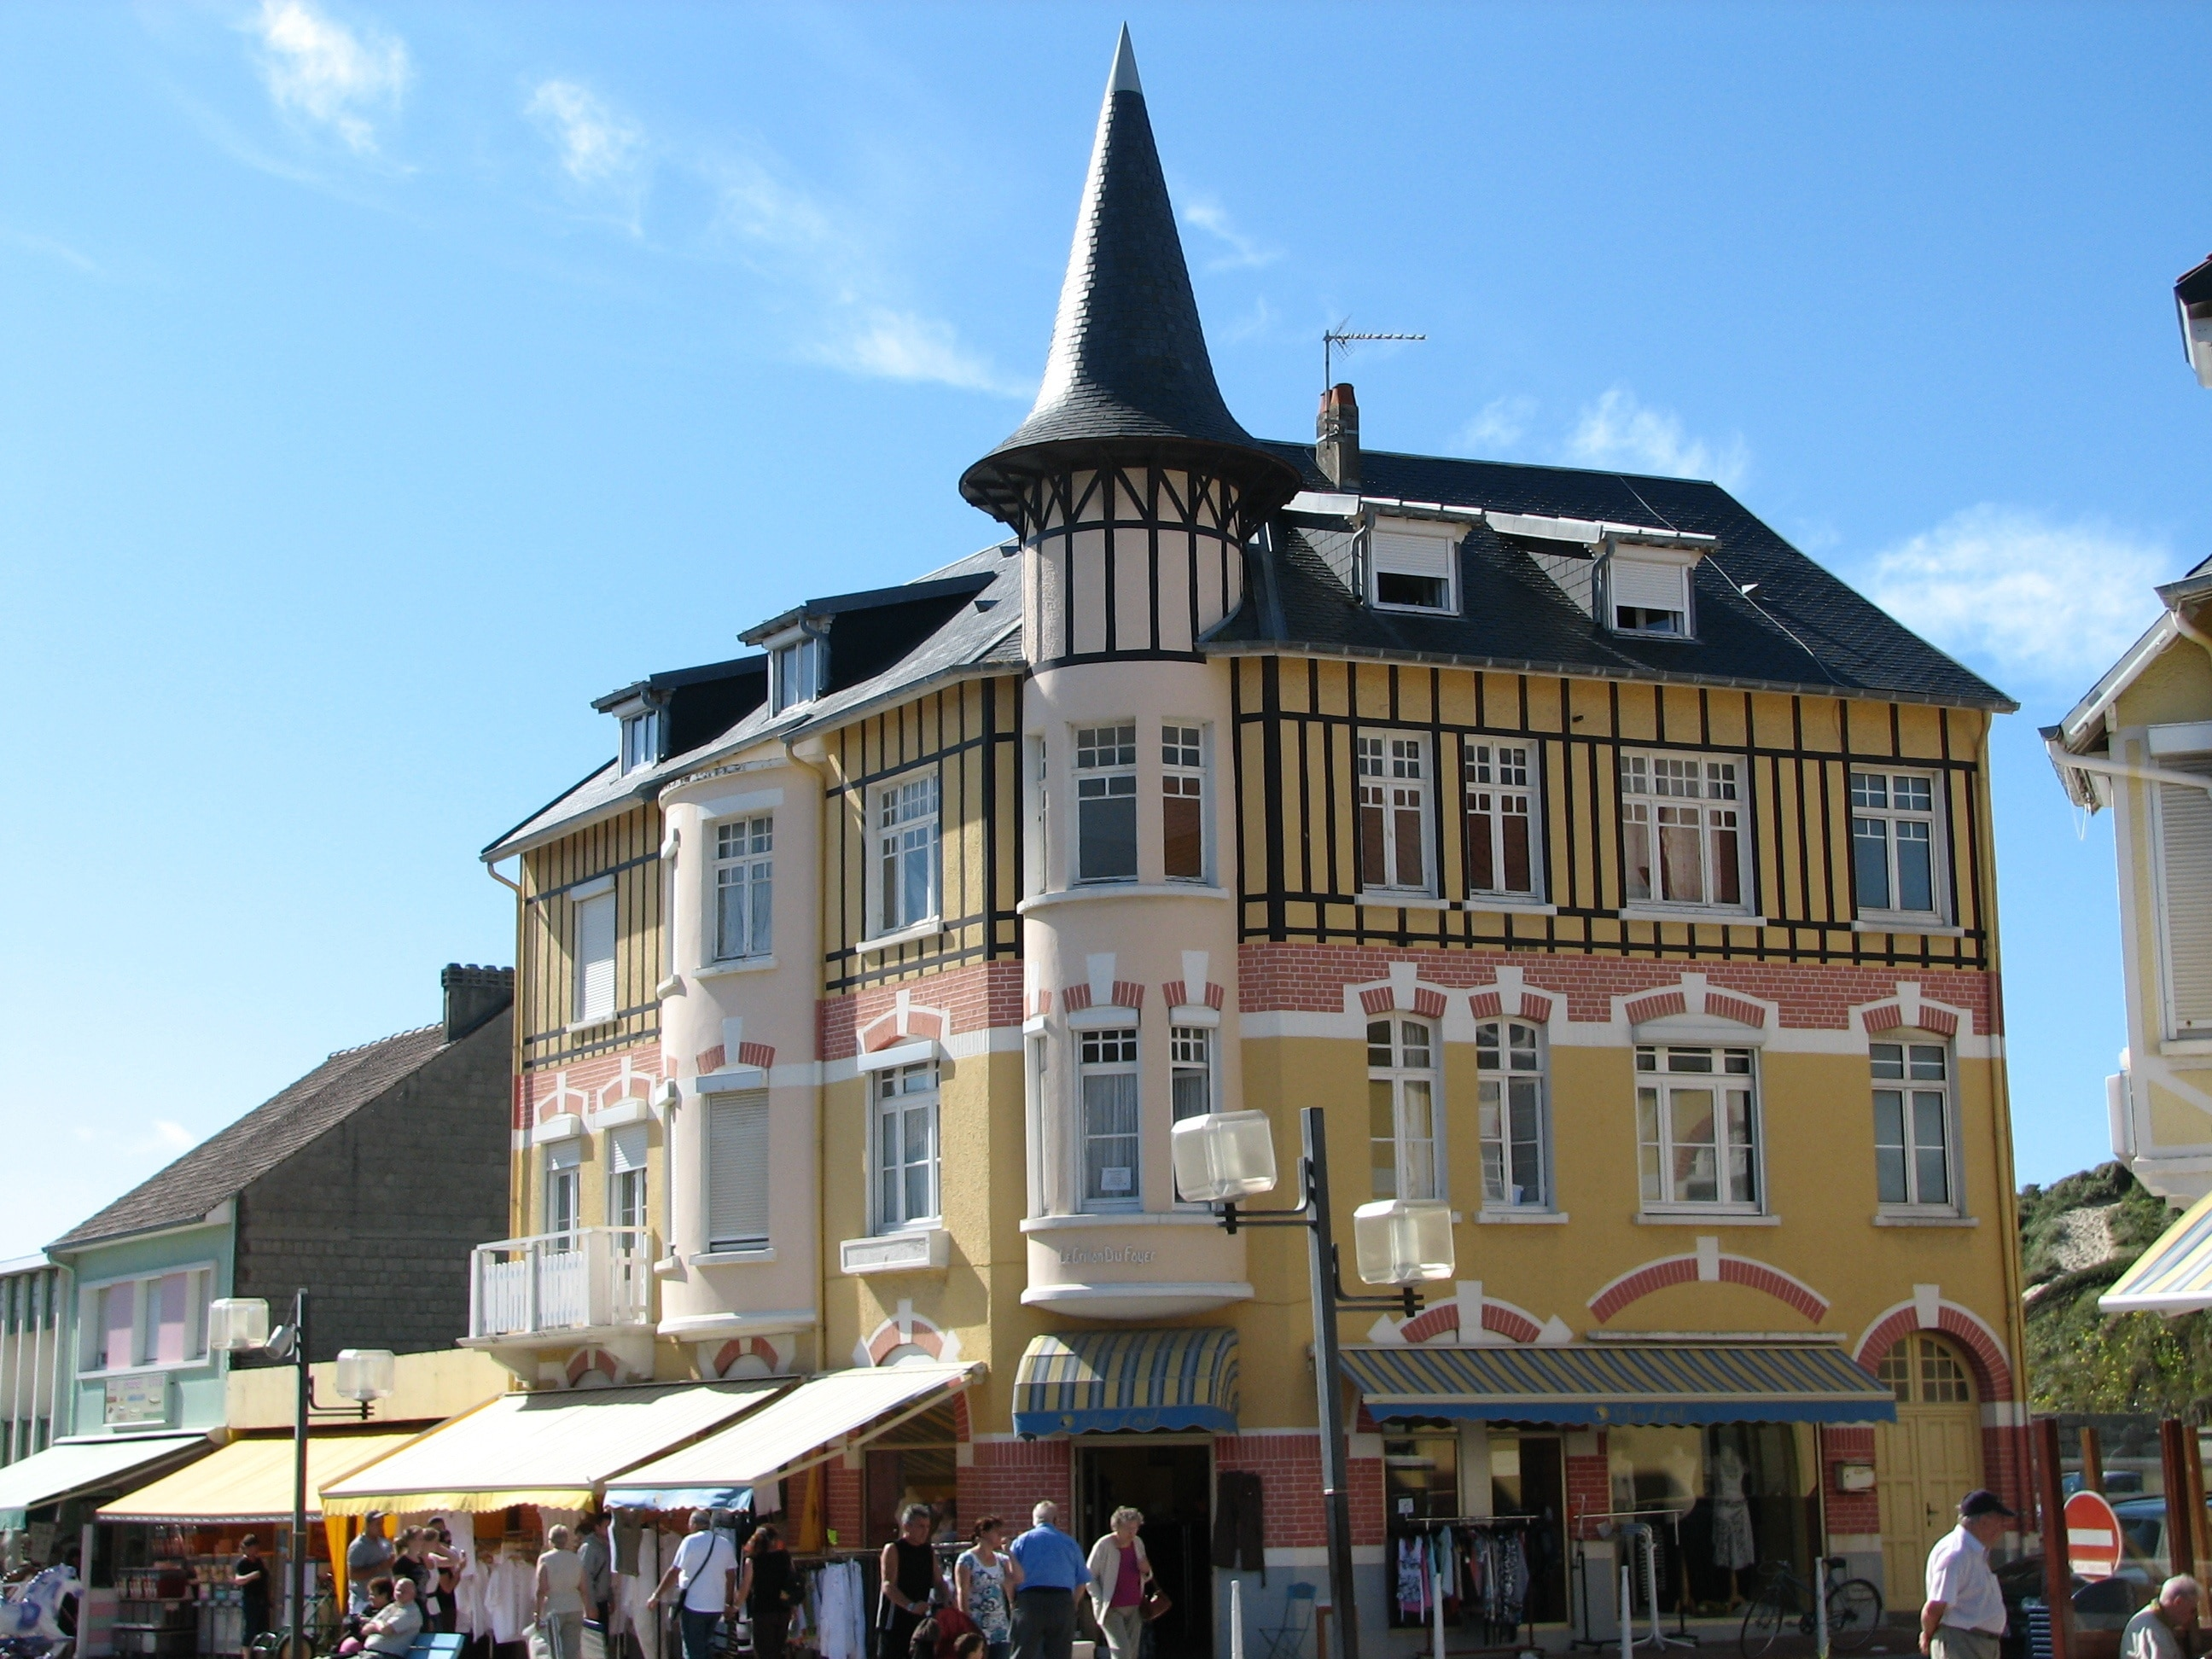 Quend, Somme, France